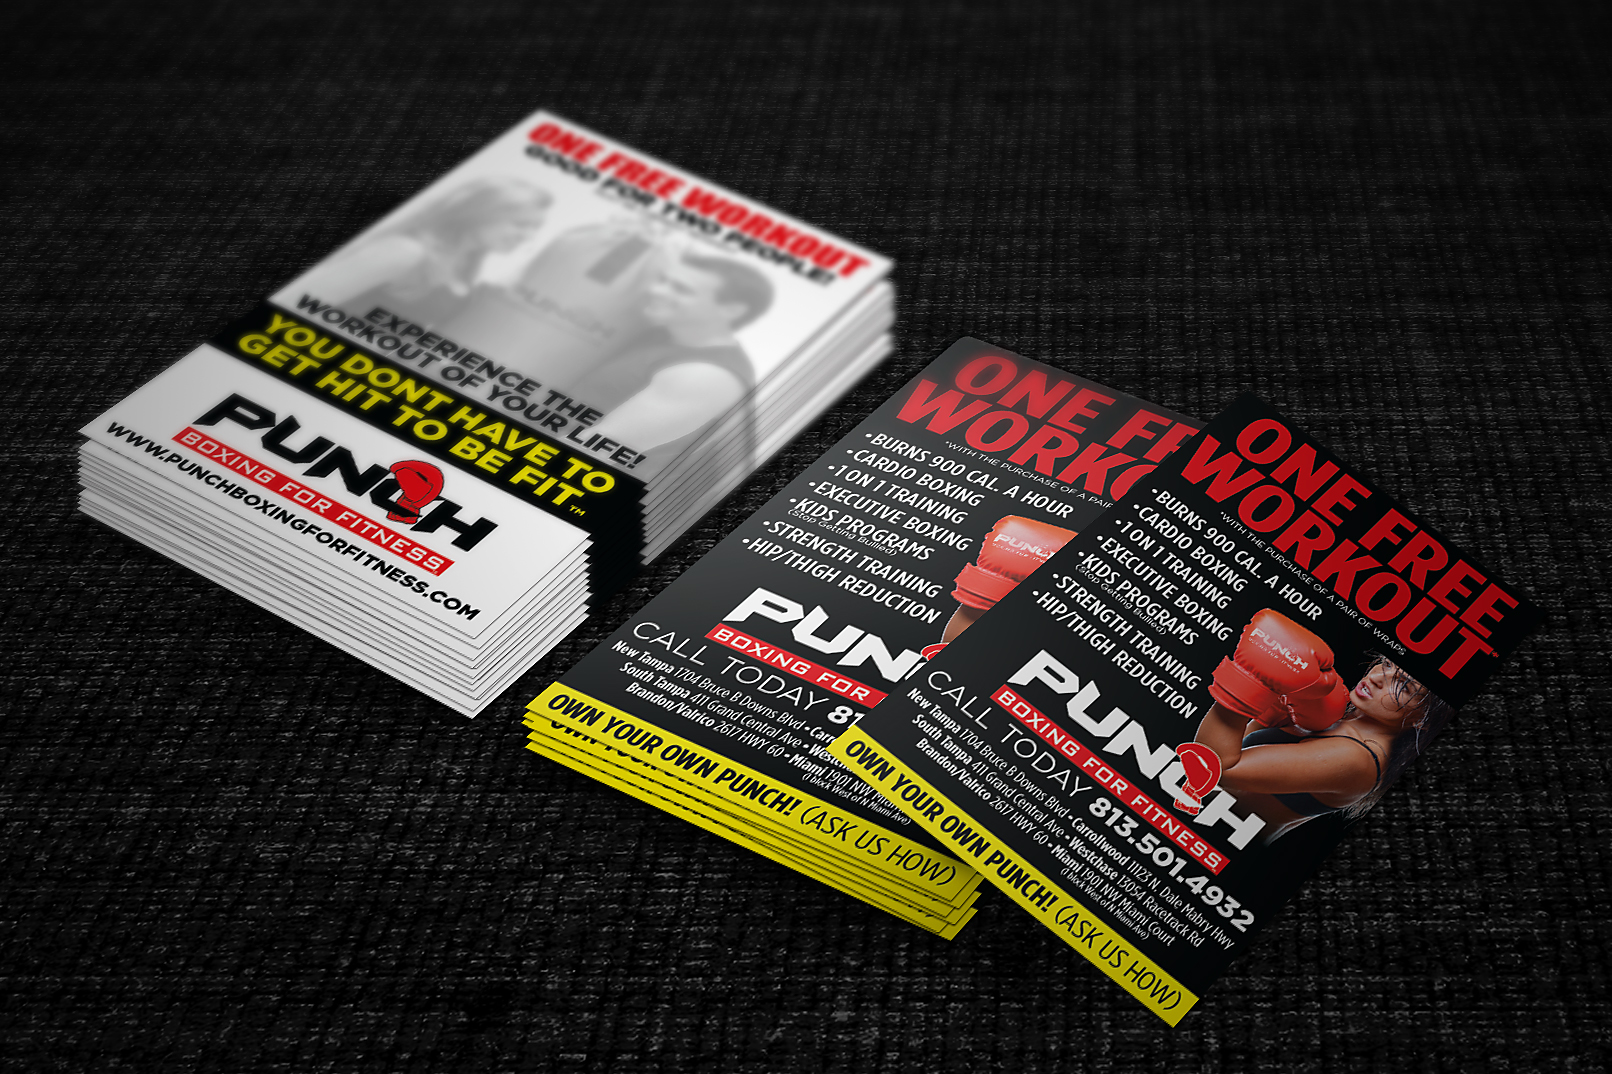 Punch Boxing for Fitness Passes & Business Cards Design